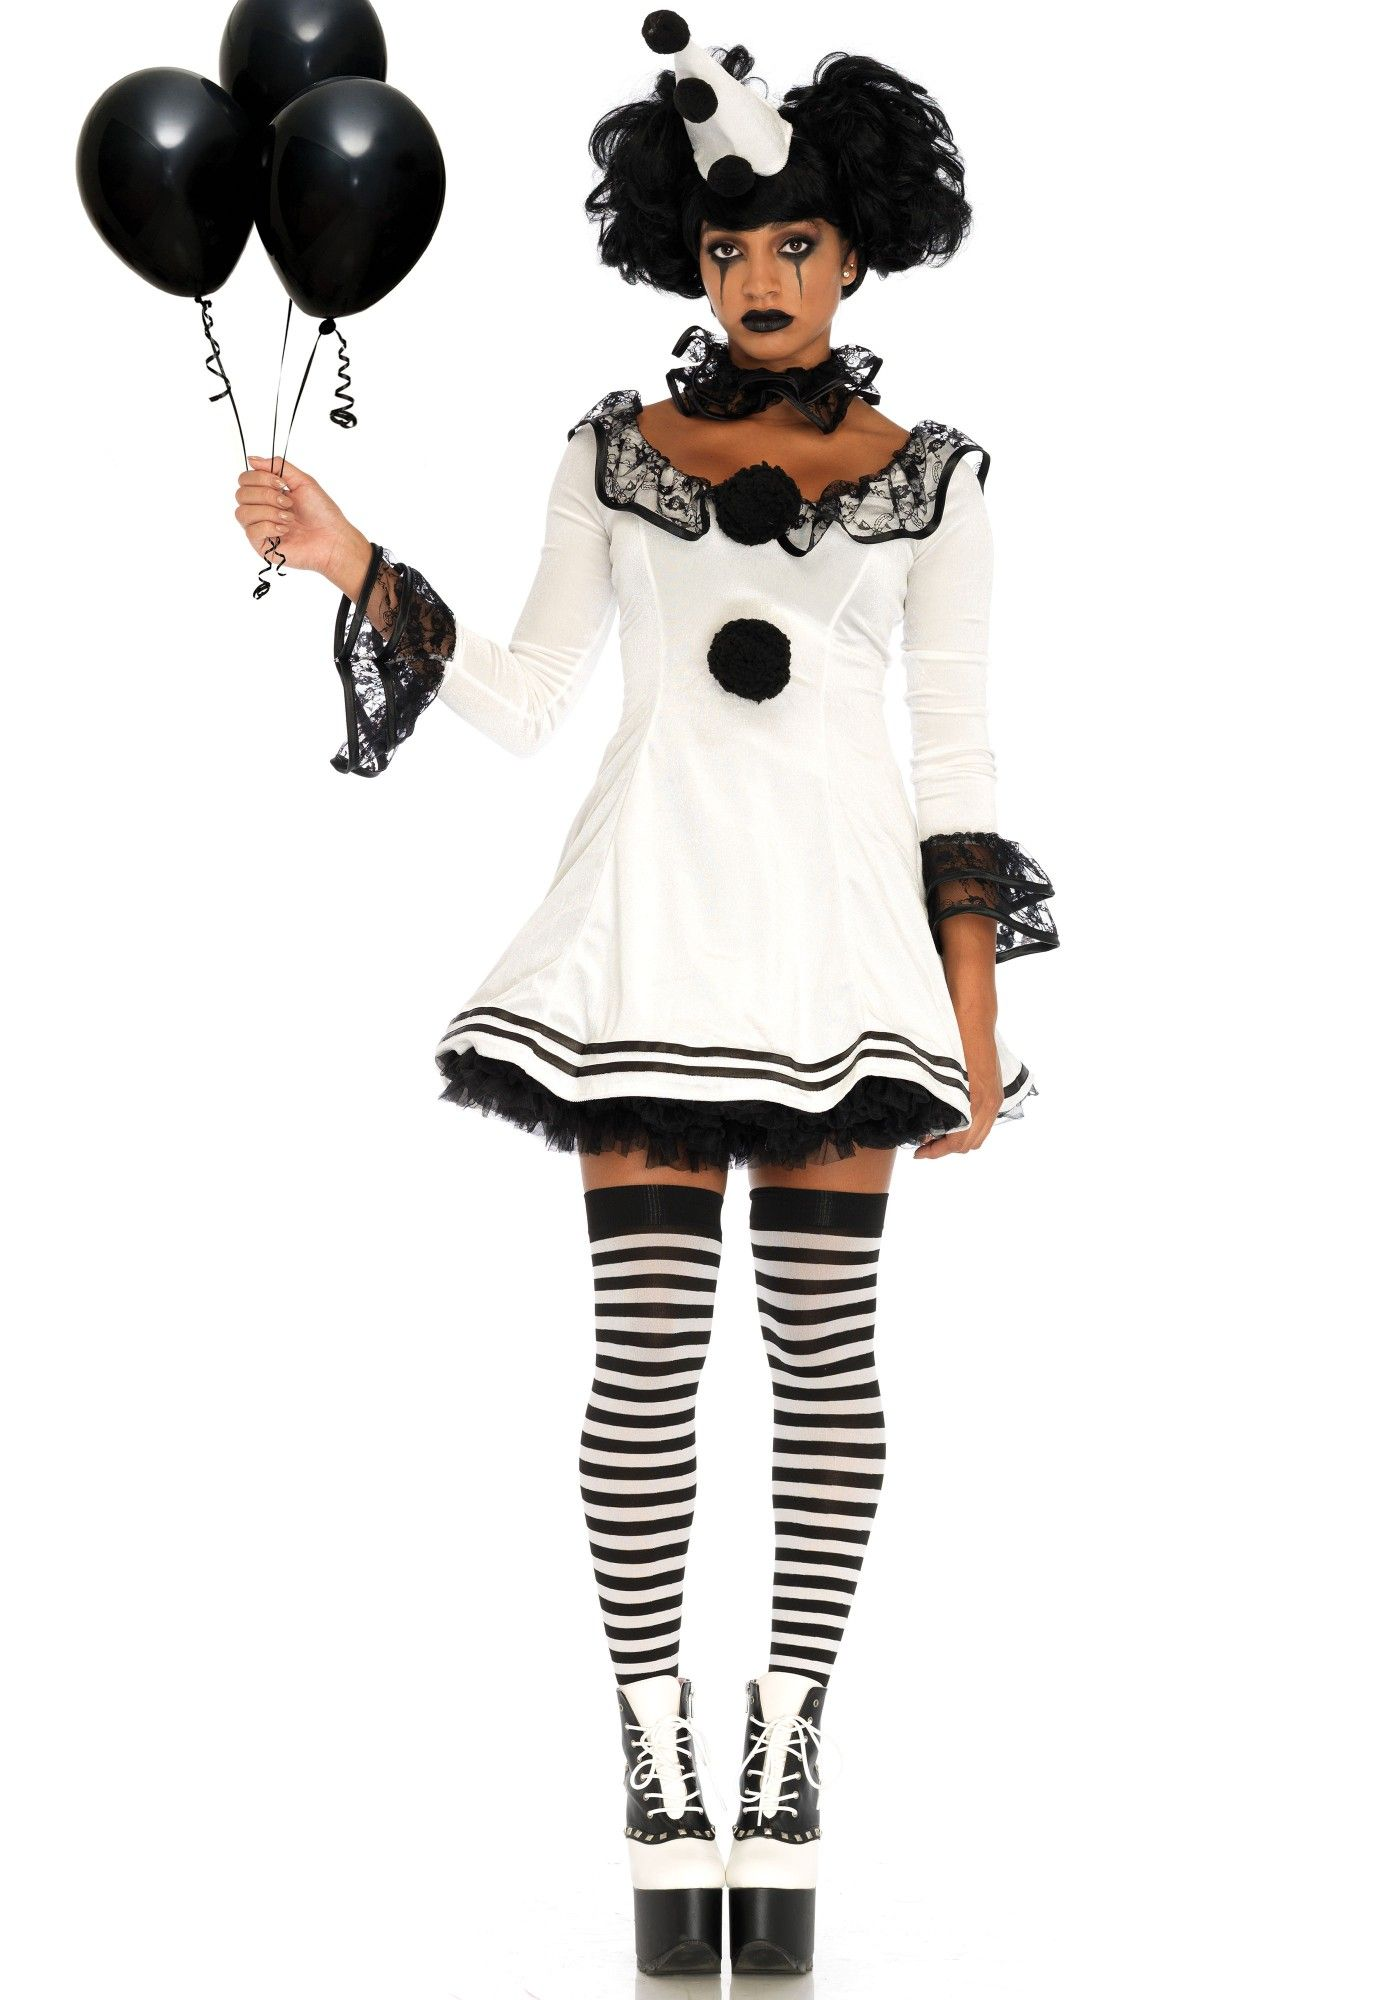 e87a0b7c3c Gorgeous white clown outfit with black pom pom accents and lace trim. The  neck piece and matching hat are included. Fabulous Halloween or Circus  themed ...